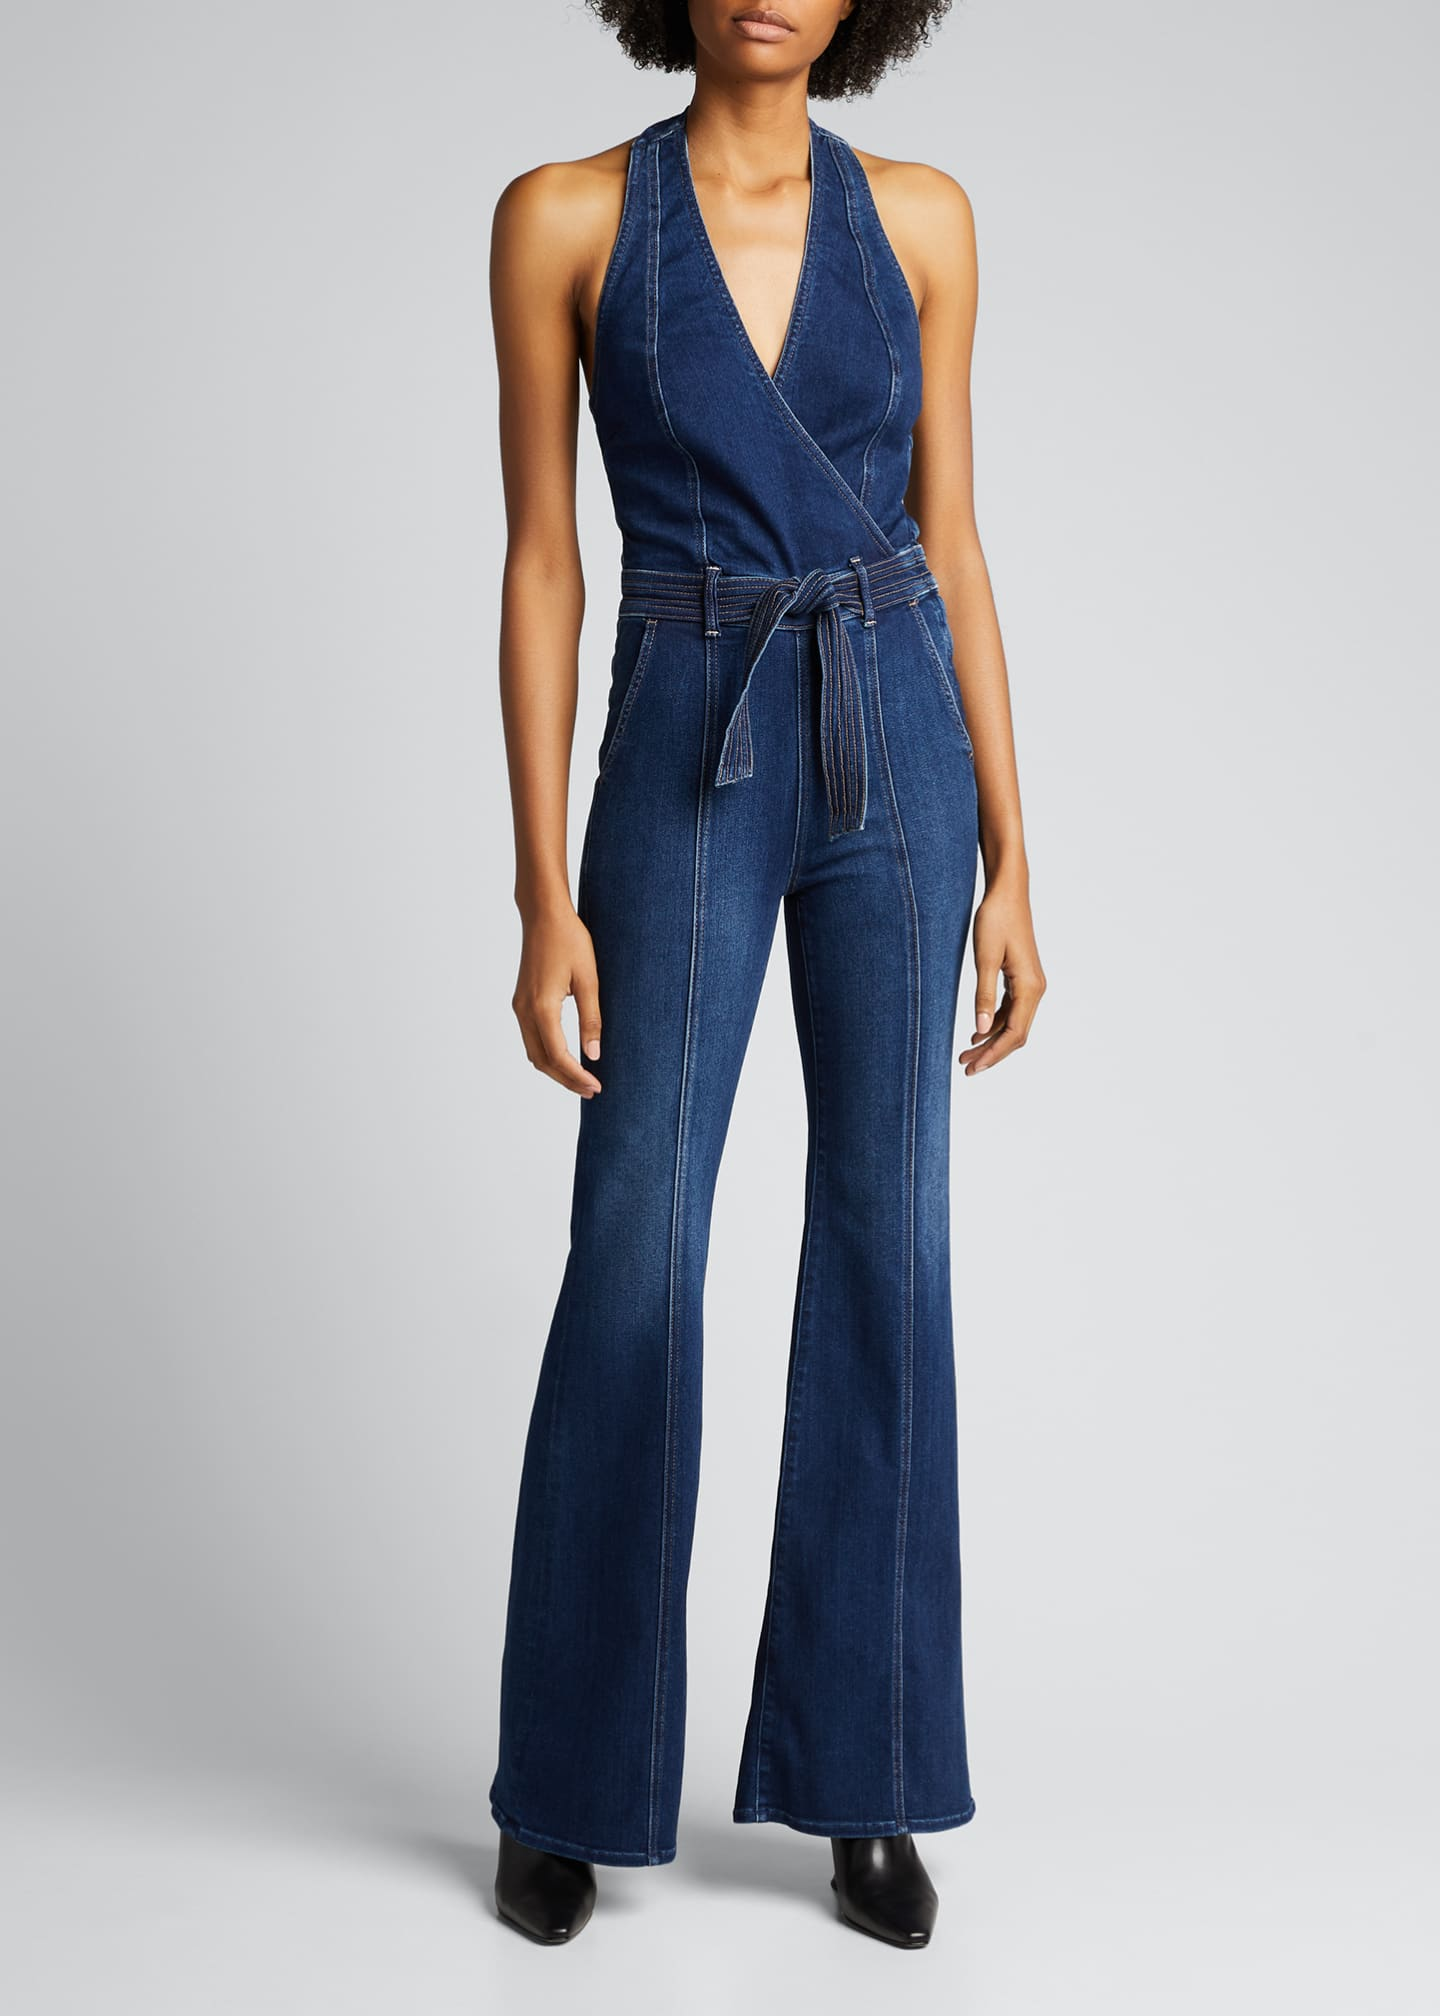 Image 3 of 5: The Halter Doozy Jumpsuit